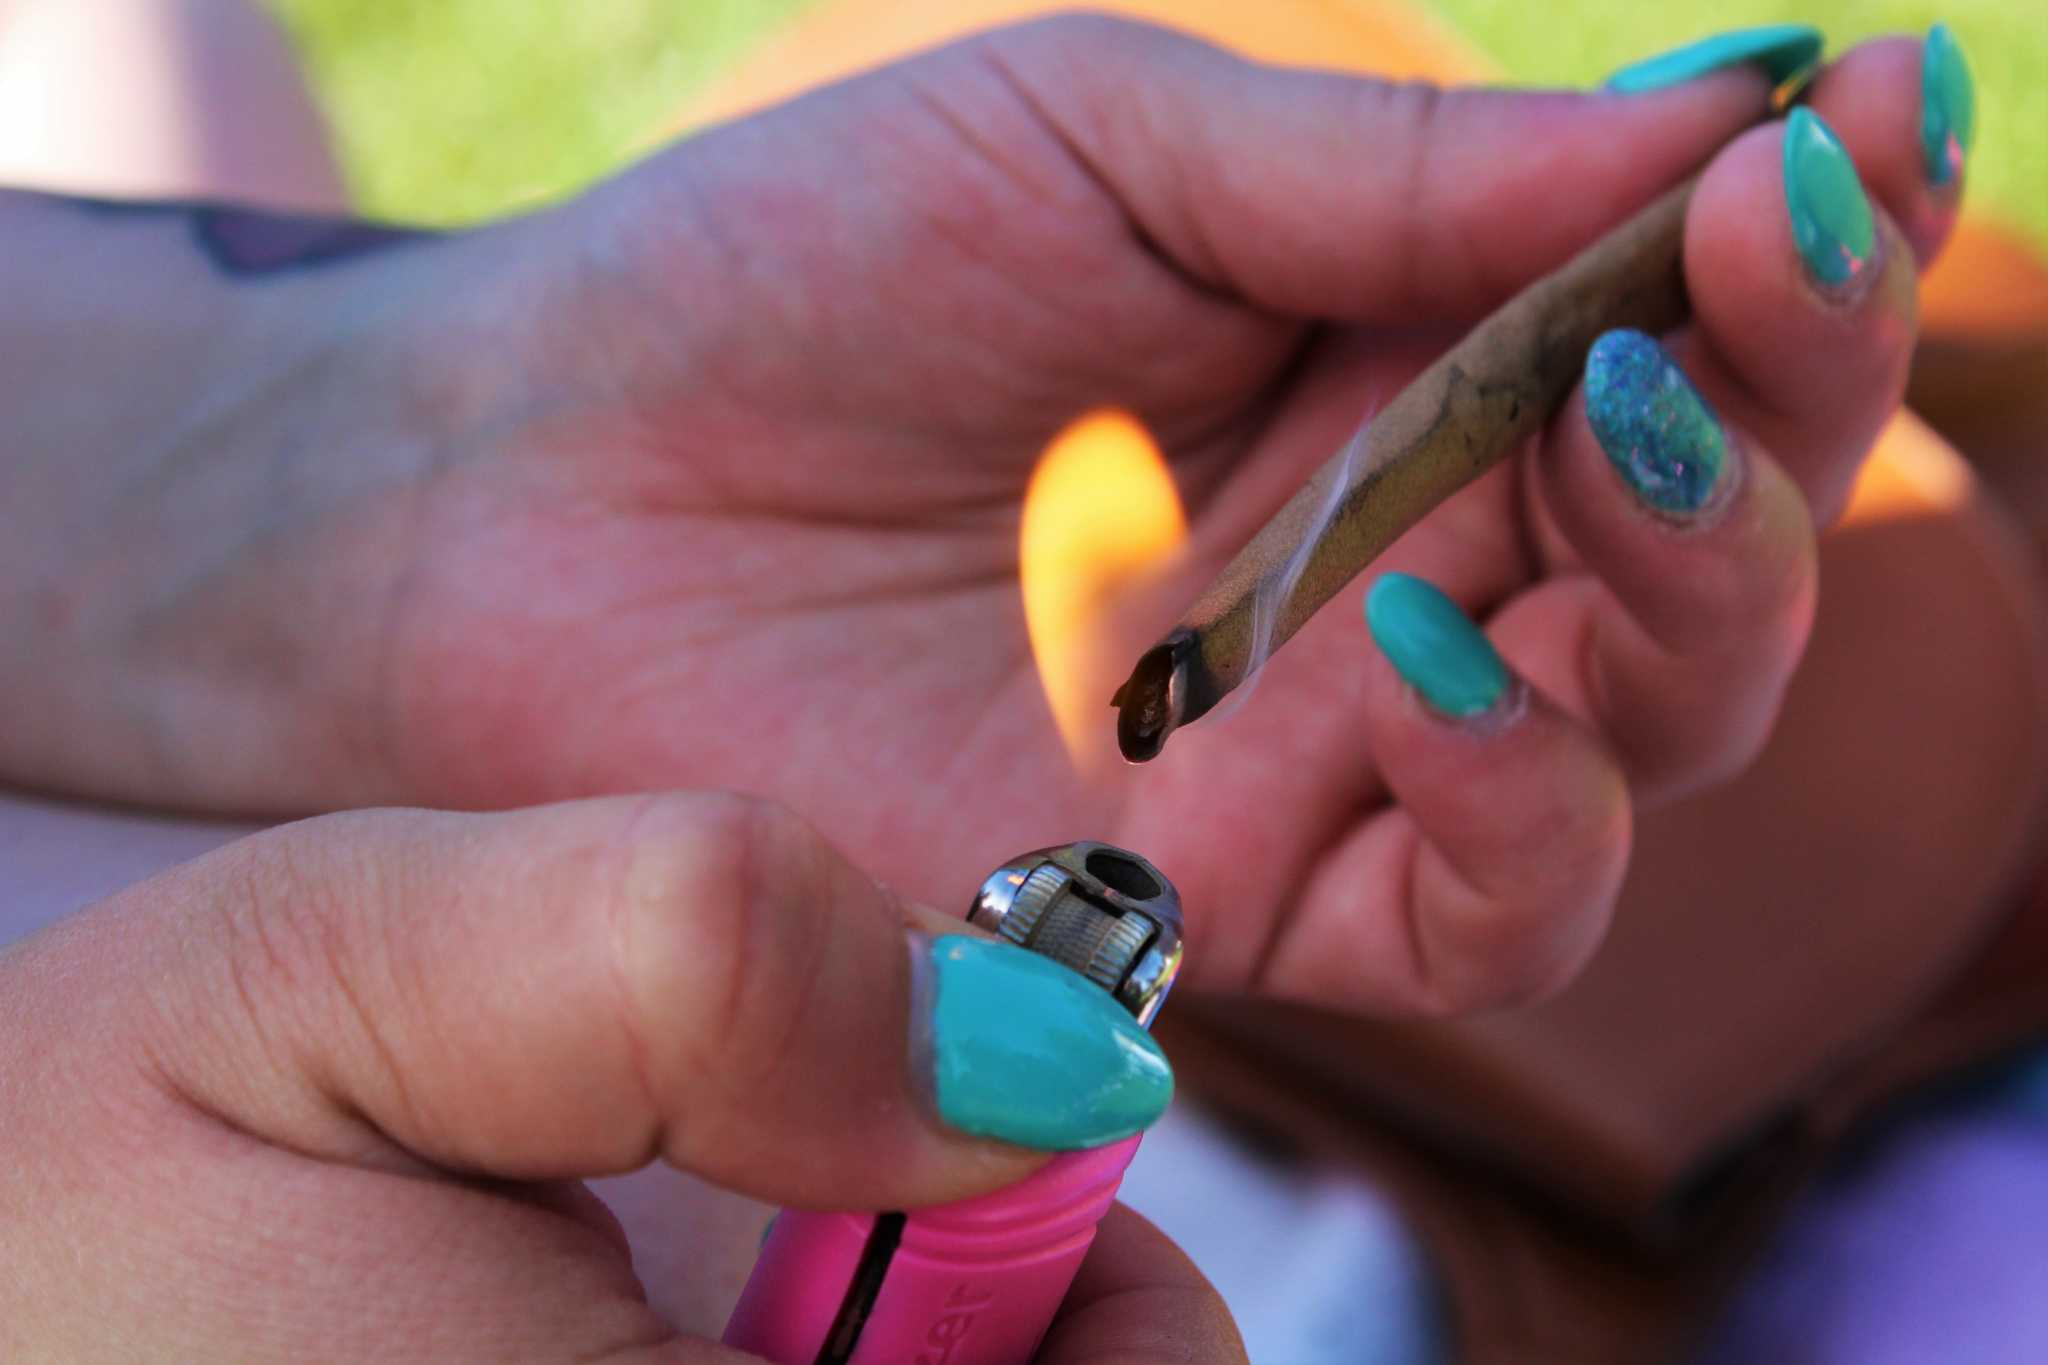 Amanda Clanton, 24, sparks up a marijuana cigarette in Golden Gate Park on April 4, 2015 in San Francisco, Calif. Photo by Alina Castillo.